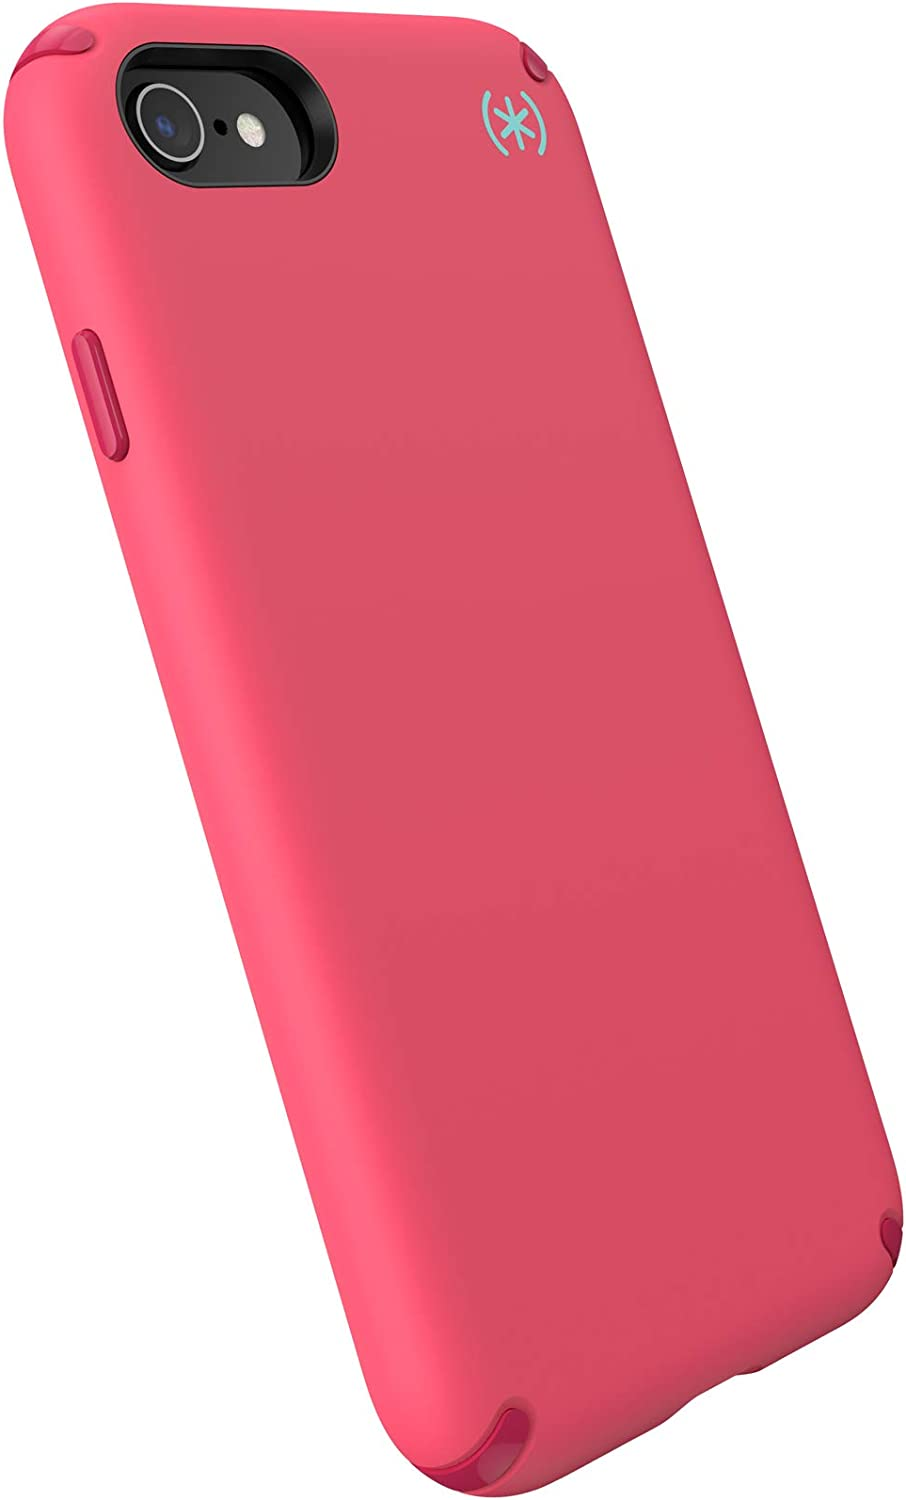 Speck Products Presidio2 PRO Case, Compatible with iPhone SE (2020)/iPhone 8/iPhone 7, Goji Berry Pink/Silk Scarf Red/Zeal Teal (136209-9131)